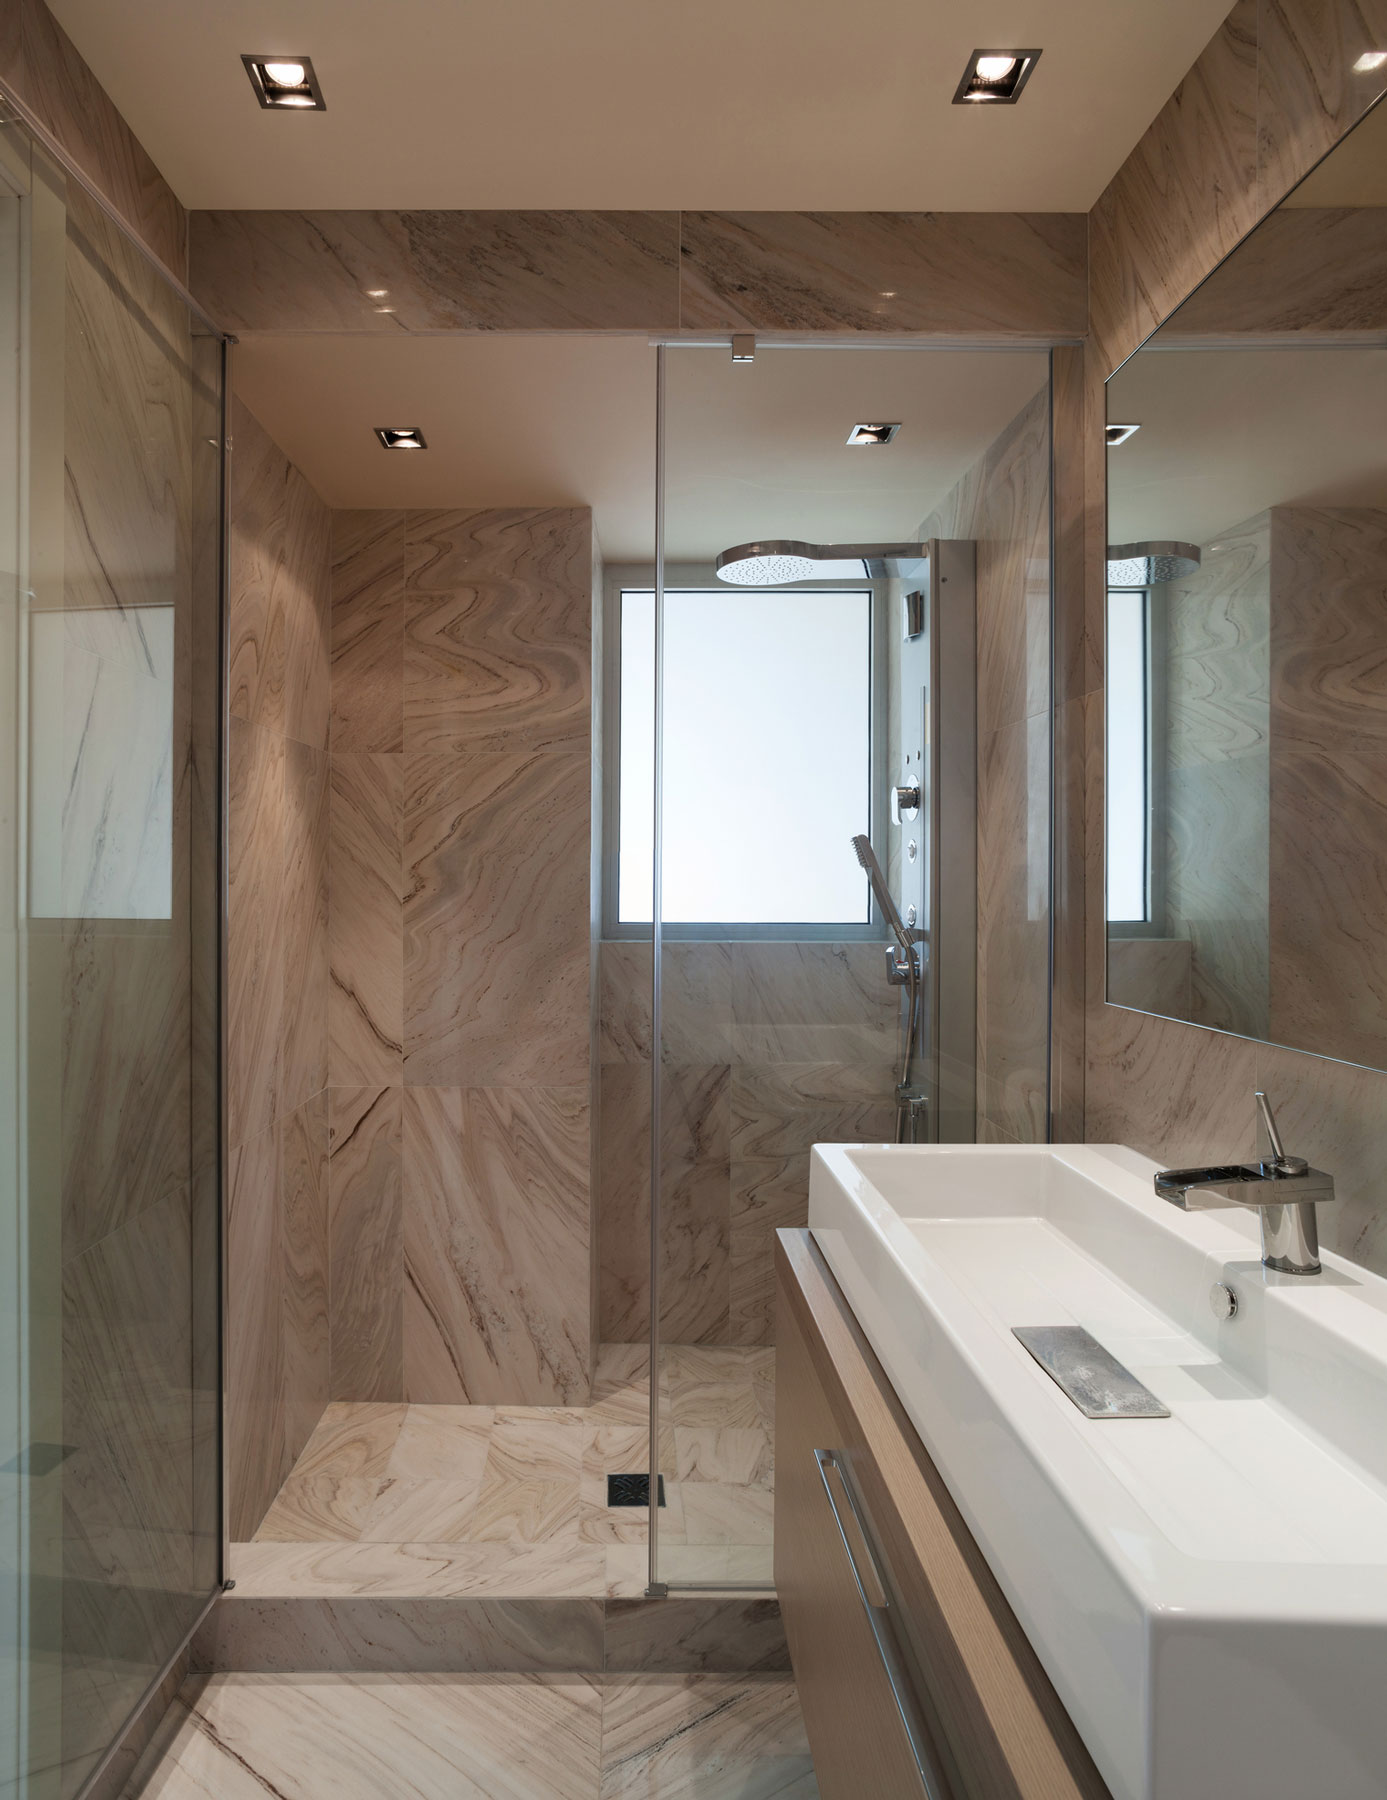 Bathroom for tile floor and walls forecasting dress for spring in 2019